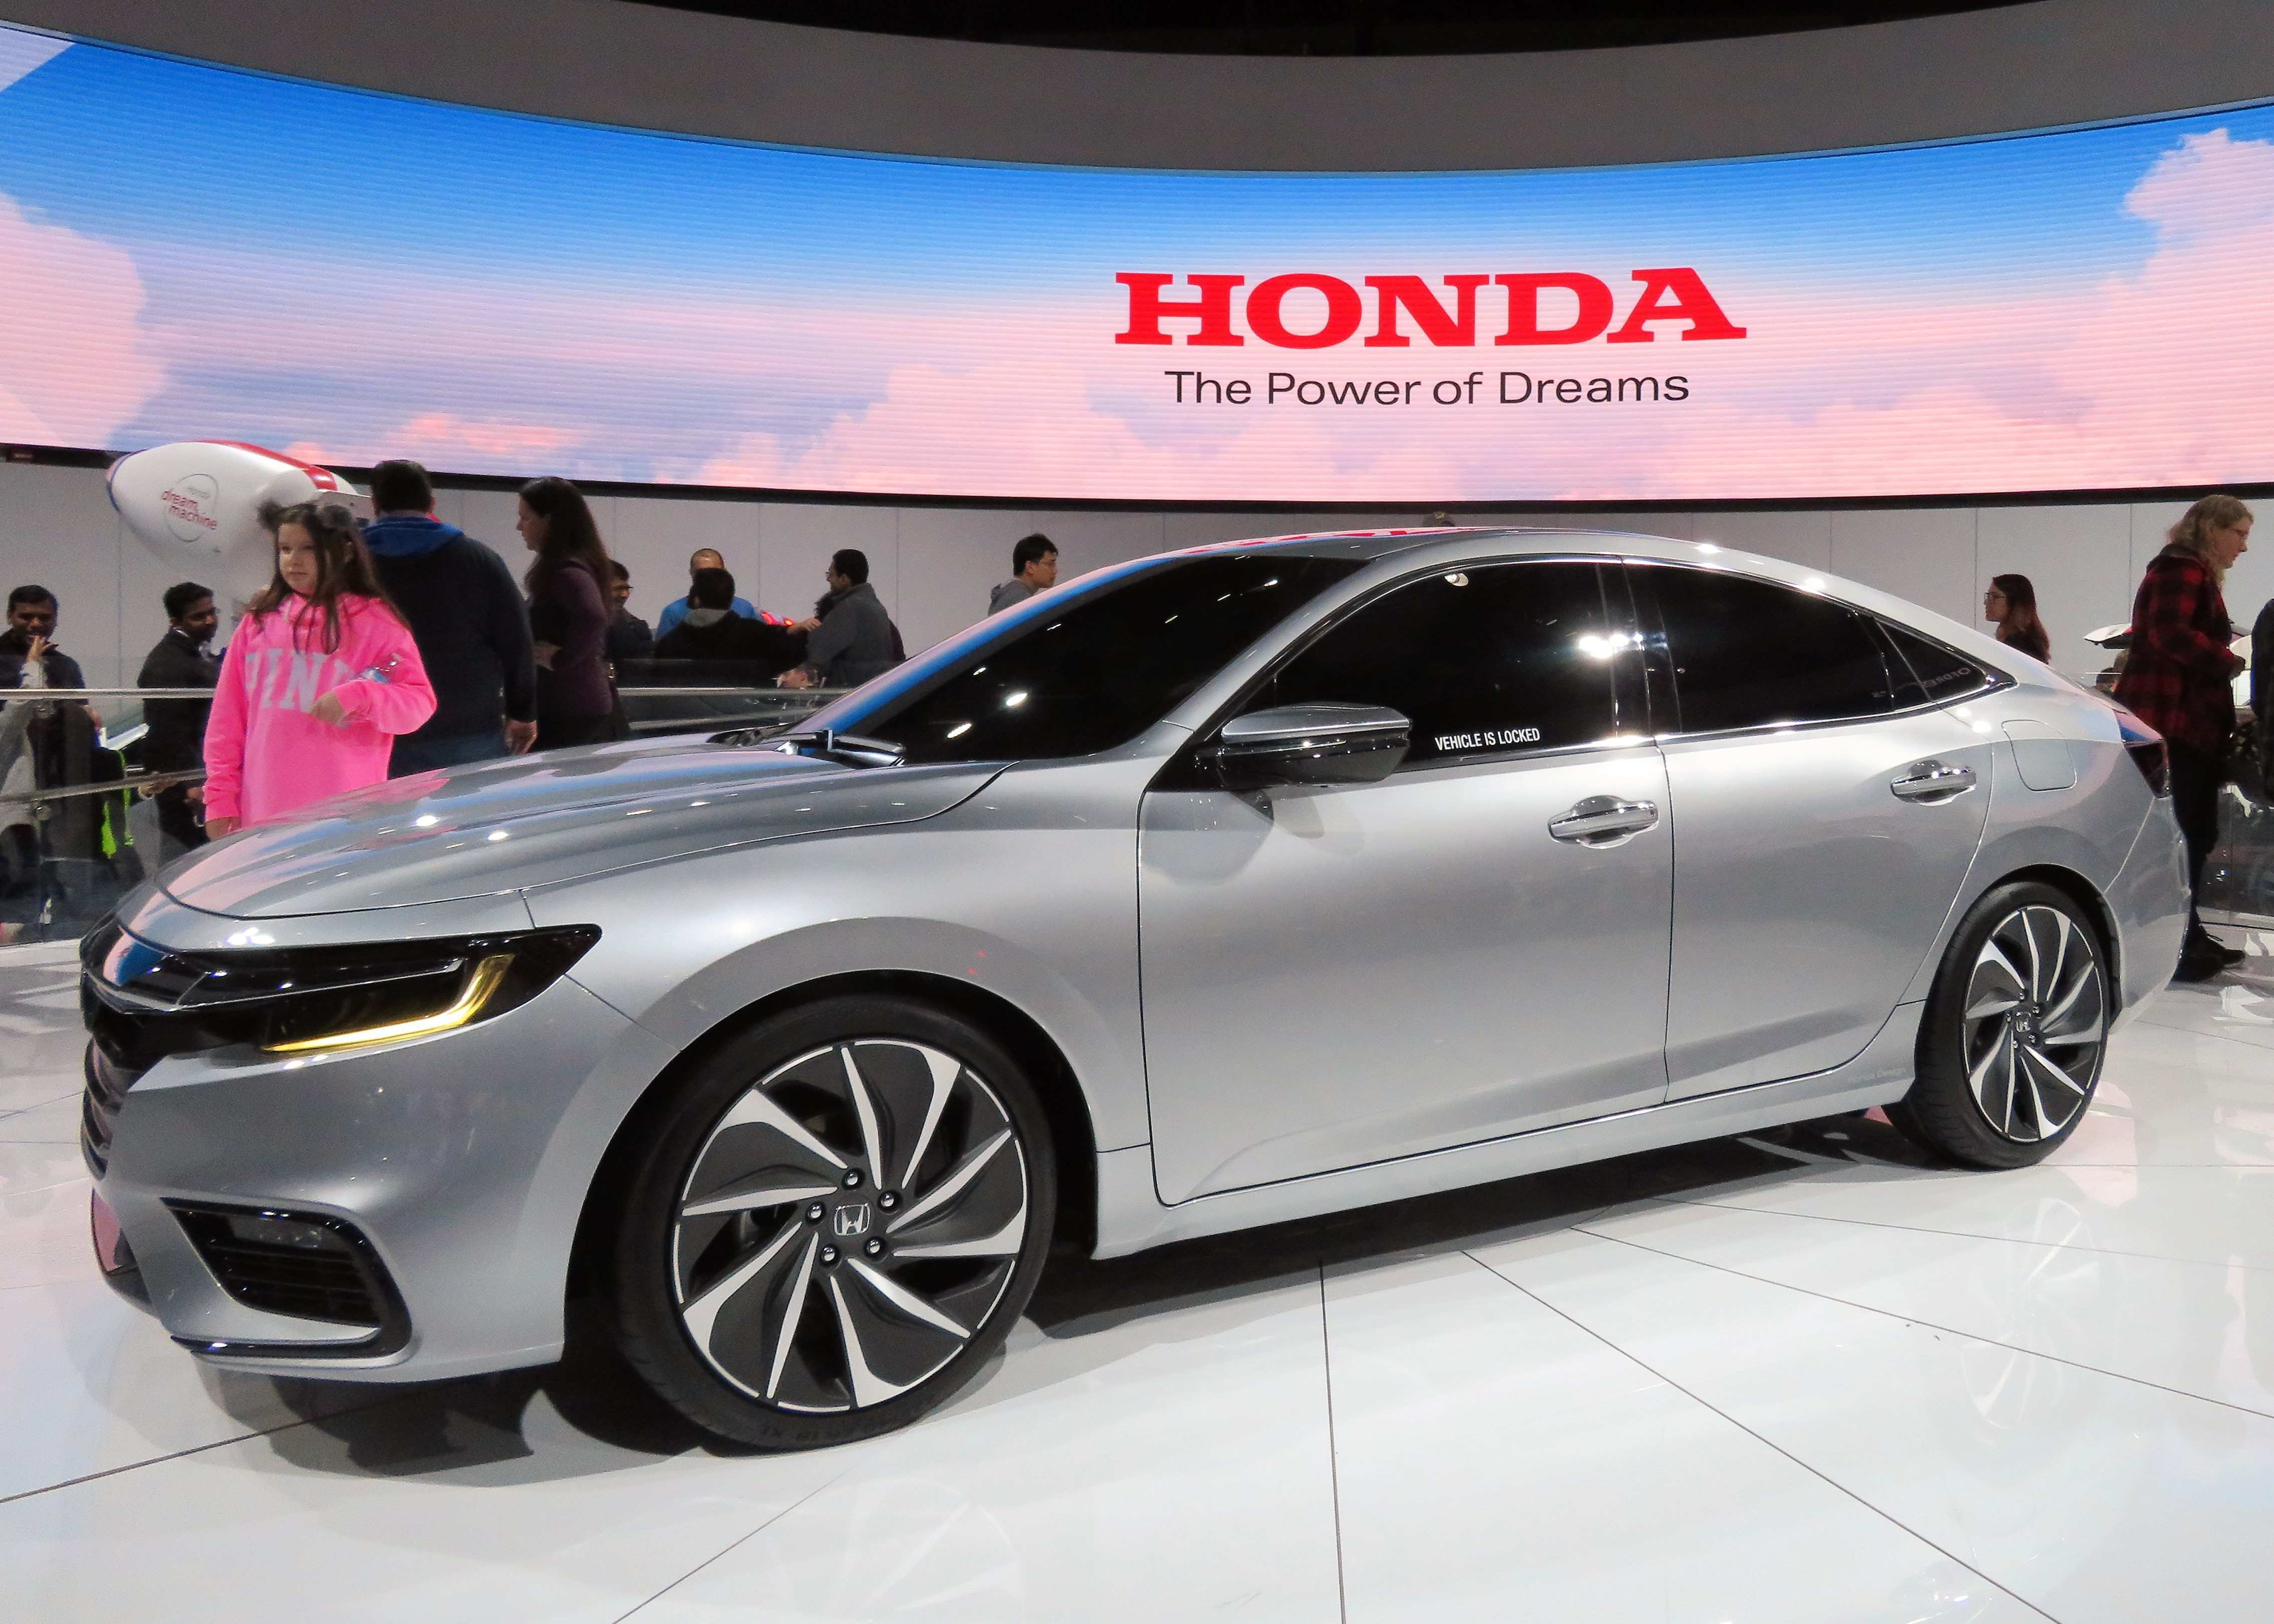 94 A Honda To Make English Official Language By 2020 Performance